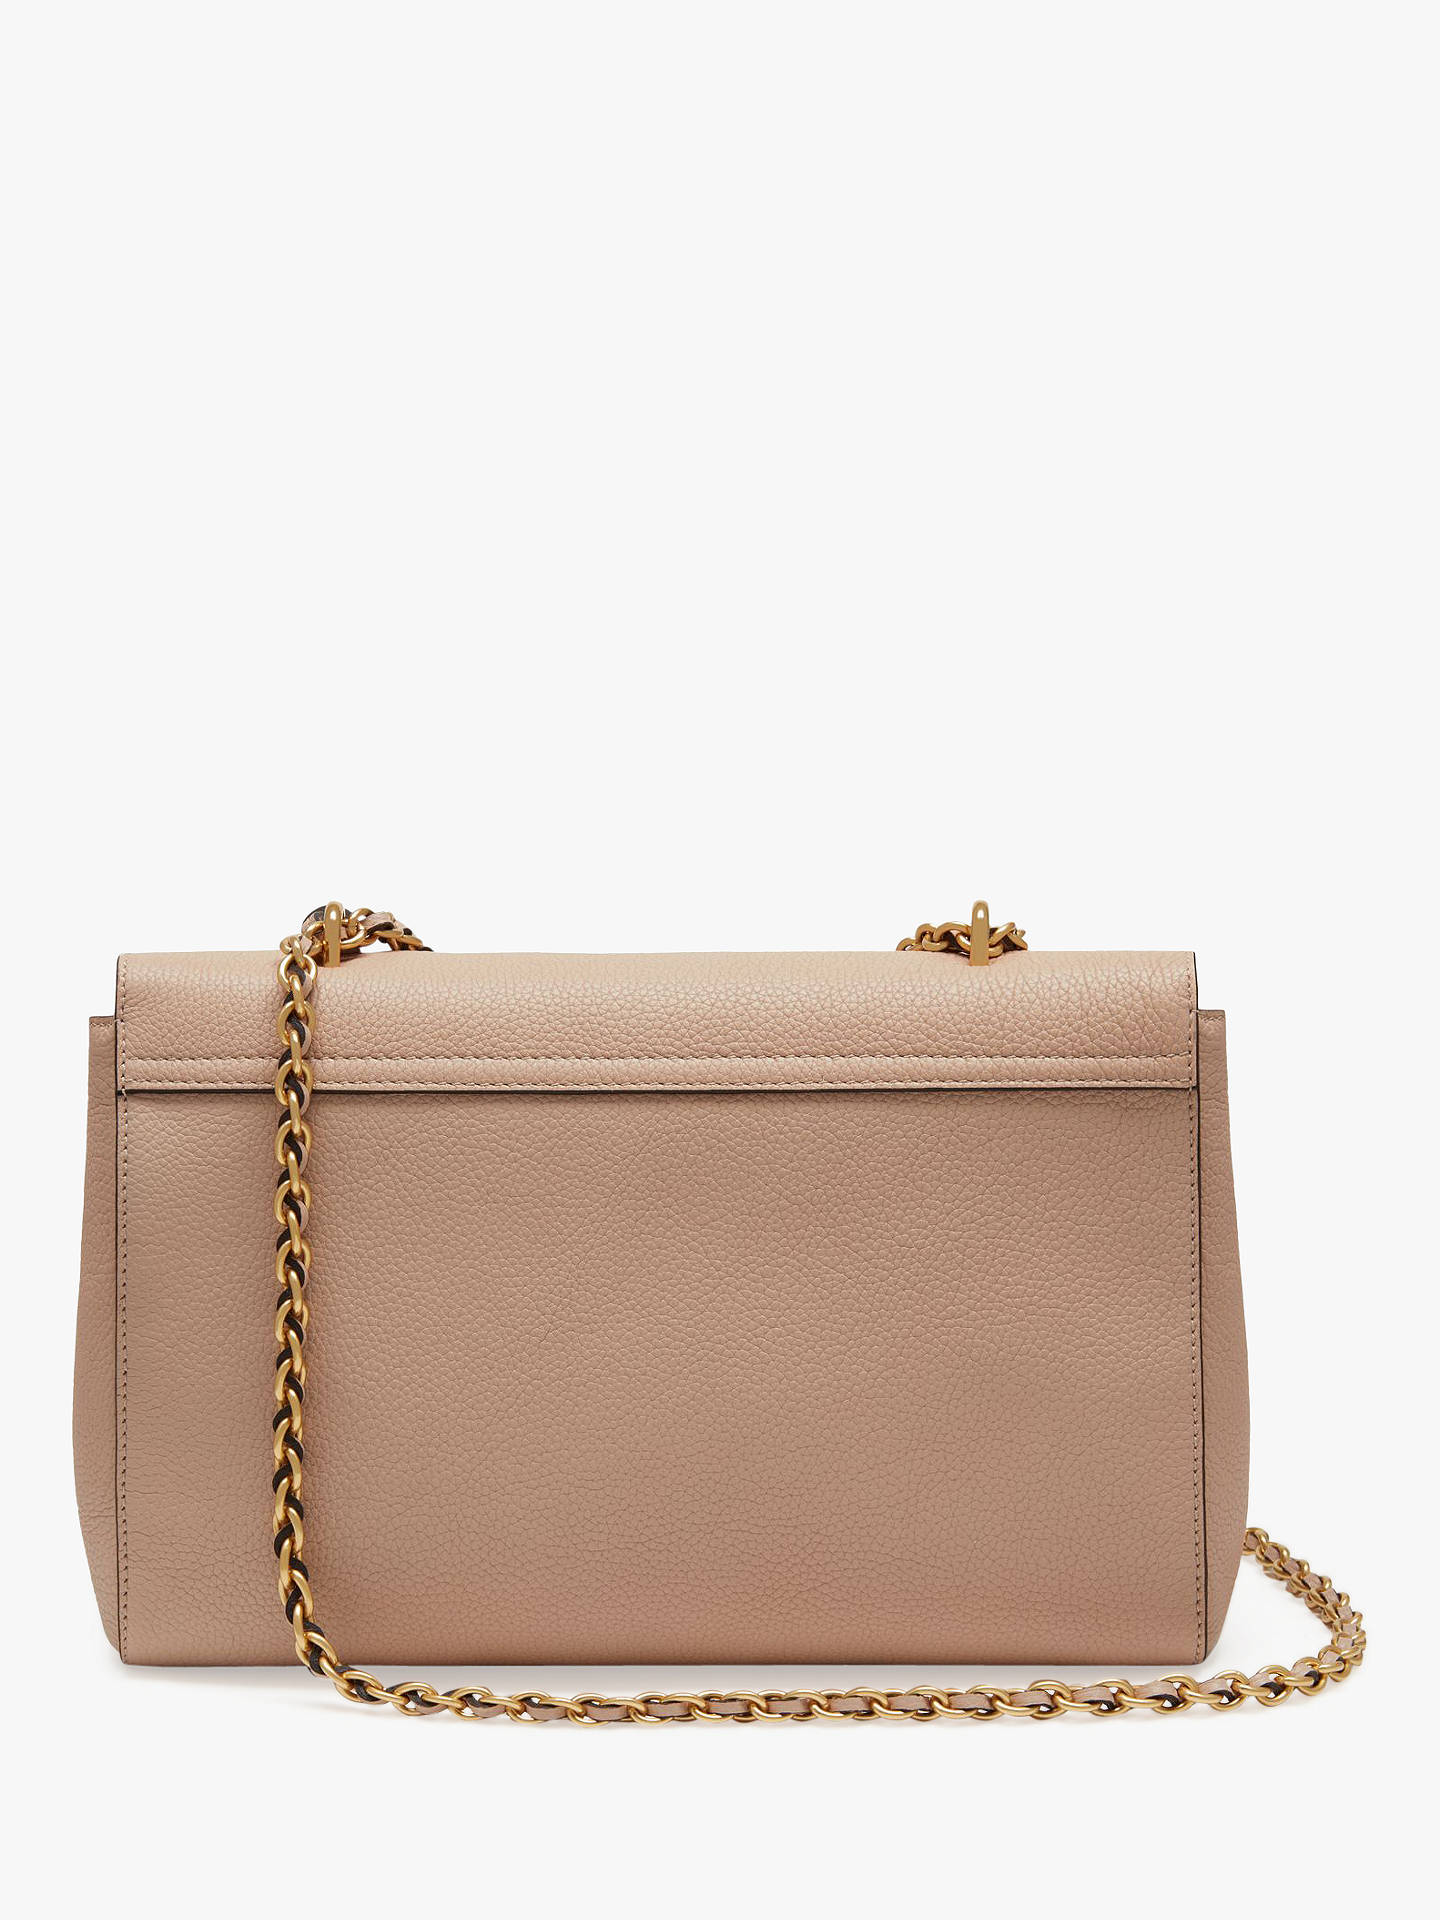 c62eb8894c ... Buy Mulberry Medium Lily Classic Grain Leather Shoulder Bag, Rosewater  Online at johnlewis.com ...